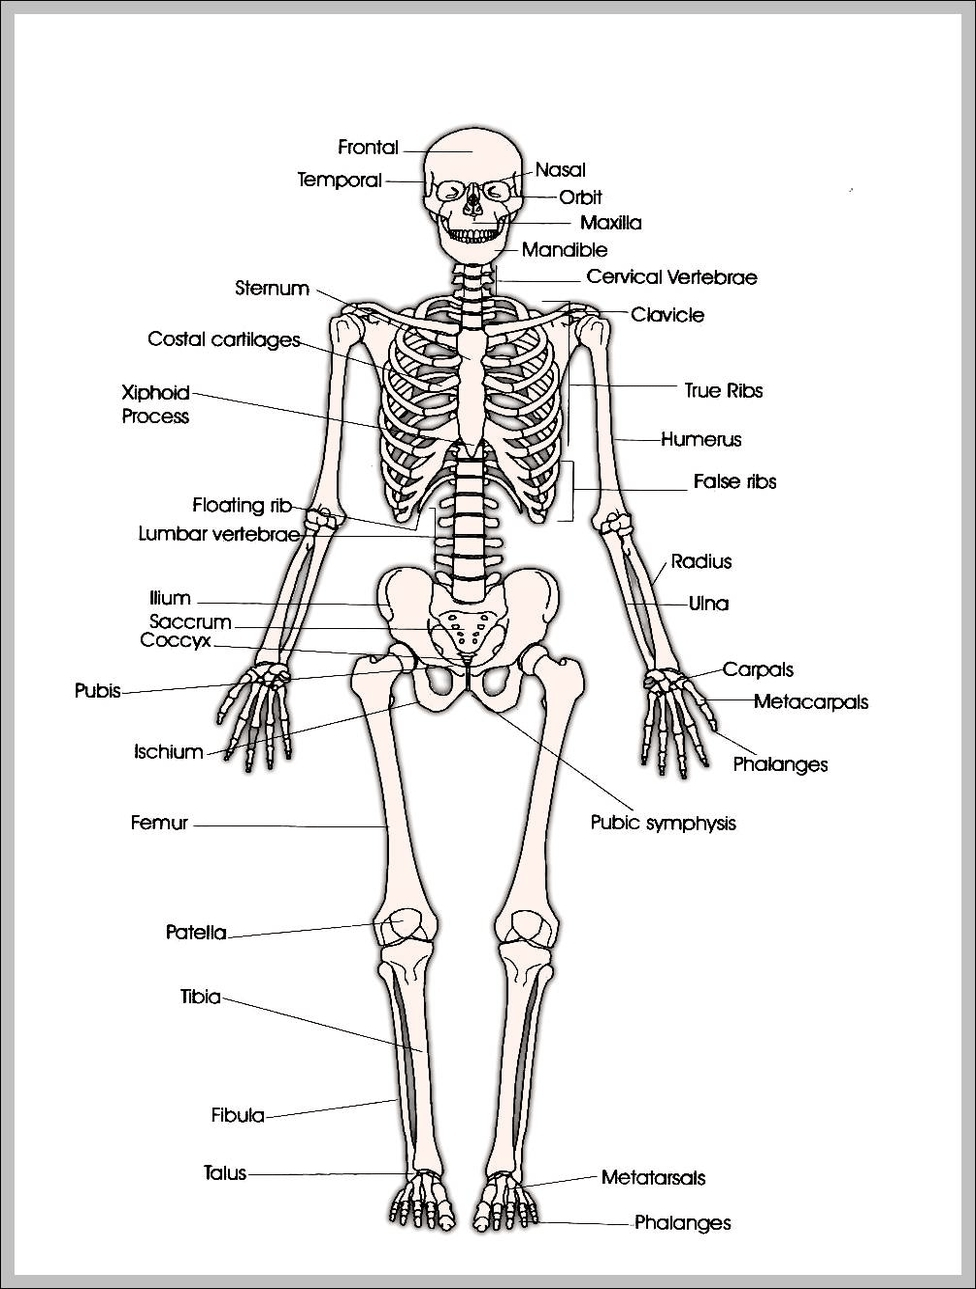 medium resolution of printable human skeleton diagram printable human skeleton chart human anatomy diagrams and charts explained this diagram depicts printable human